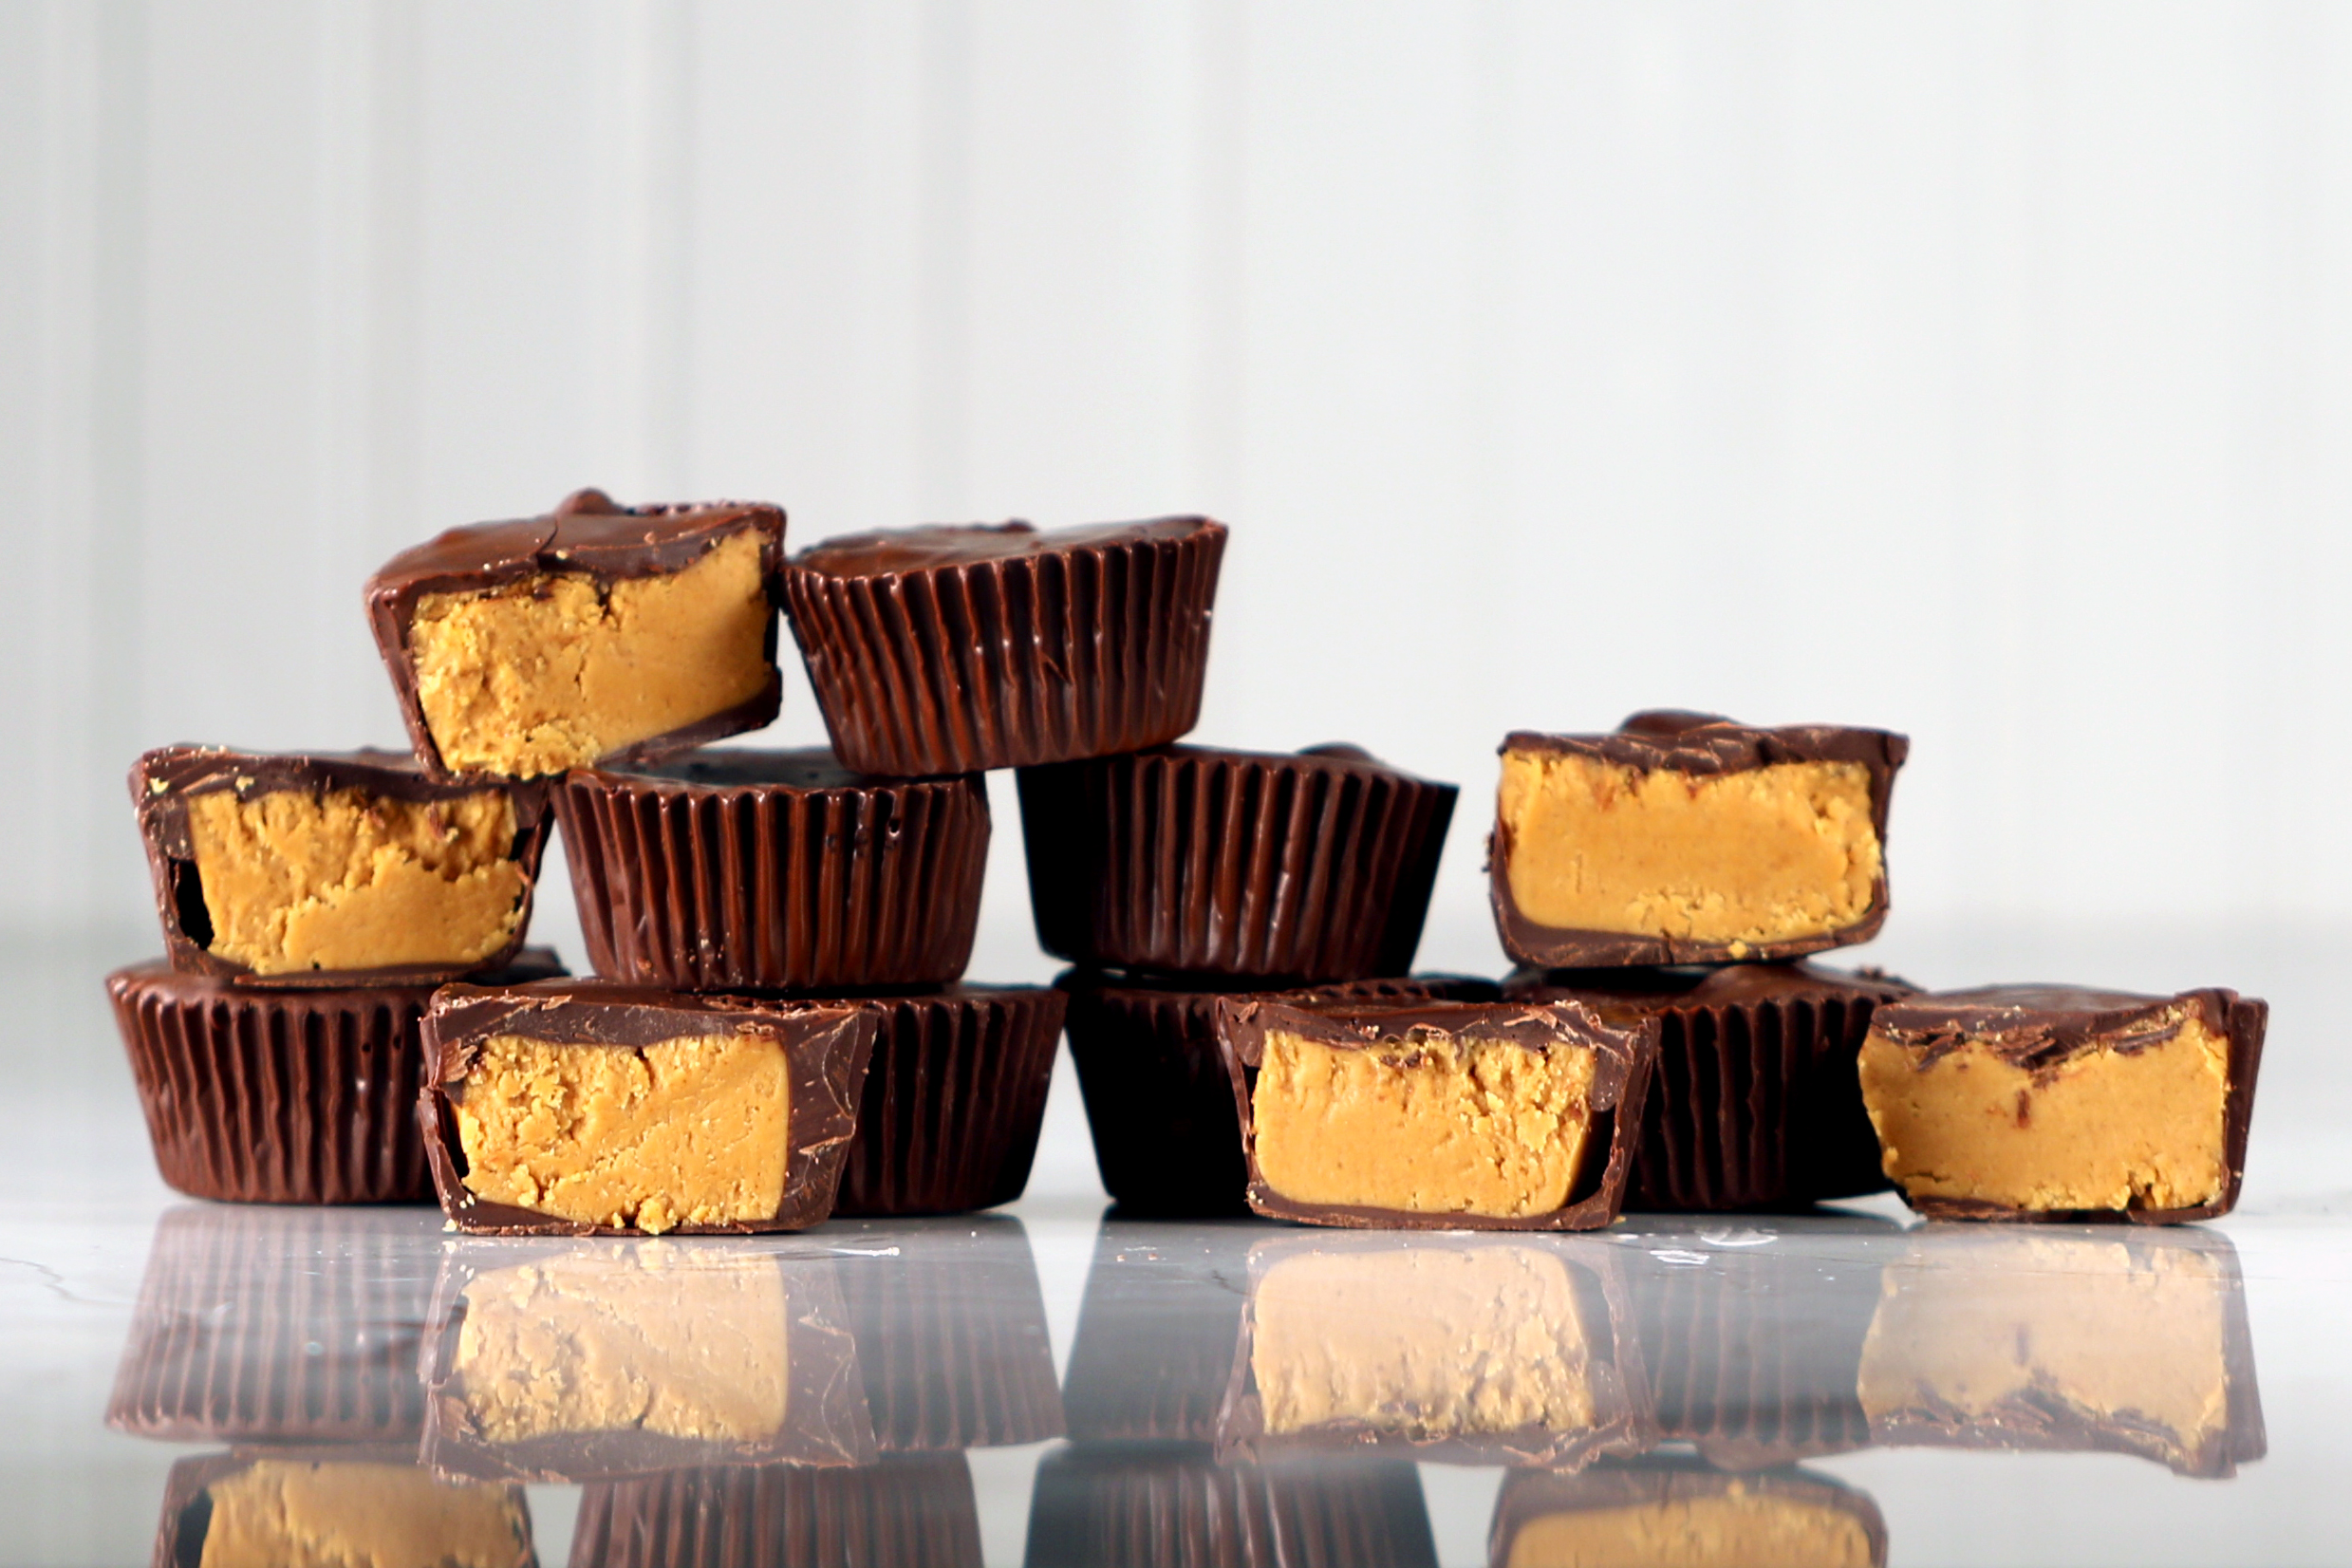 BEST LOW CARB KETO PEANUT BUTTER CUP FAT BOMBS ALTERNATE VIEW.jpg